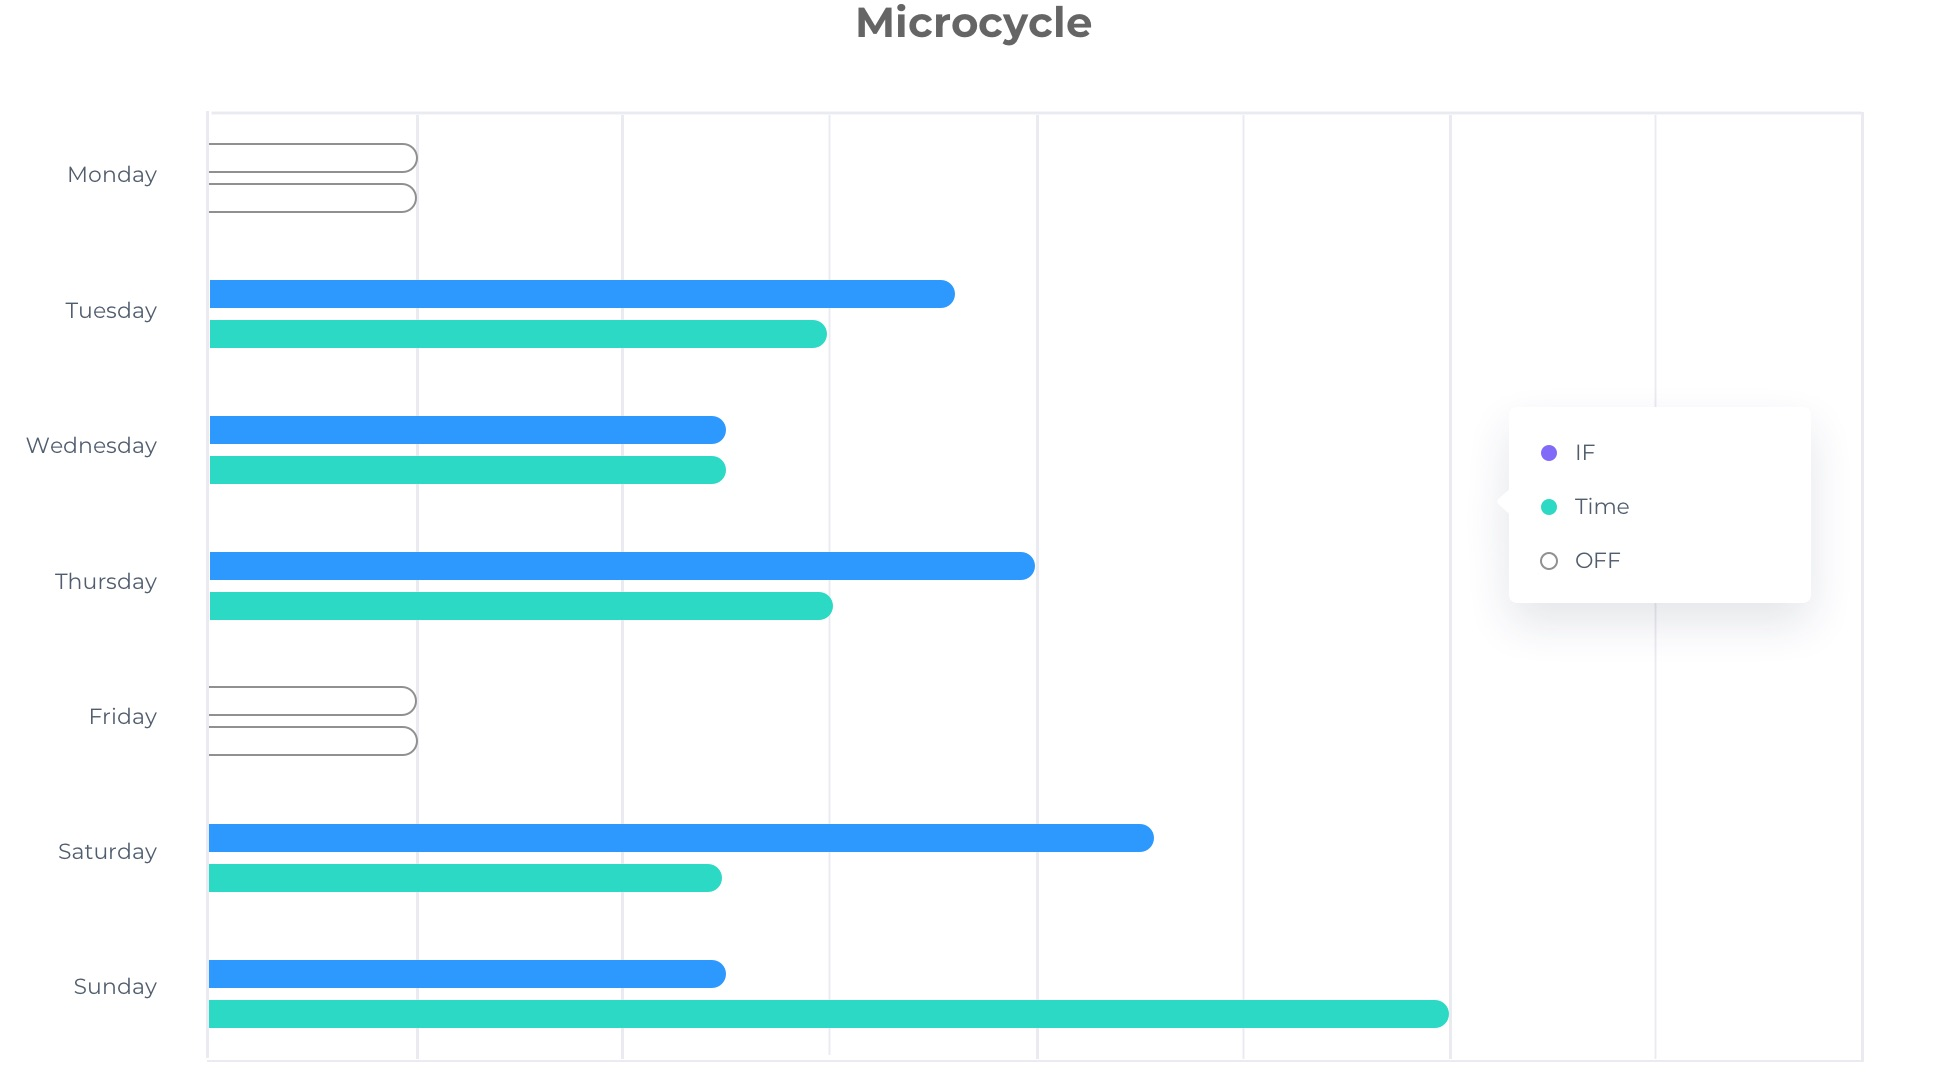 Periodization in Cycling - Microcycle